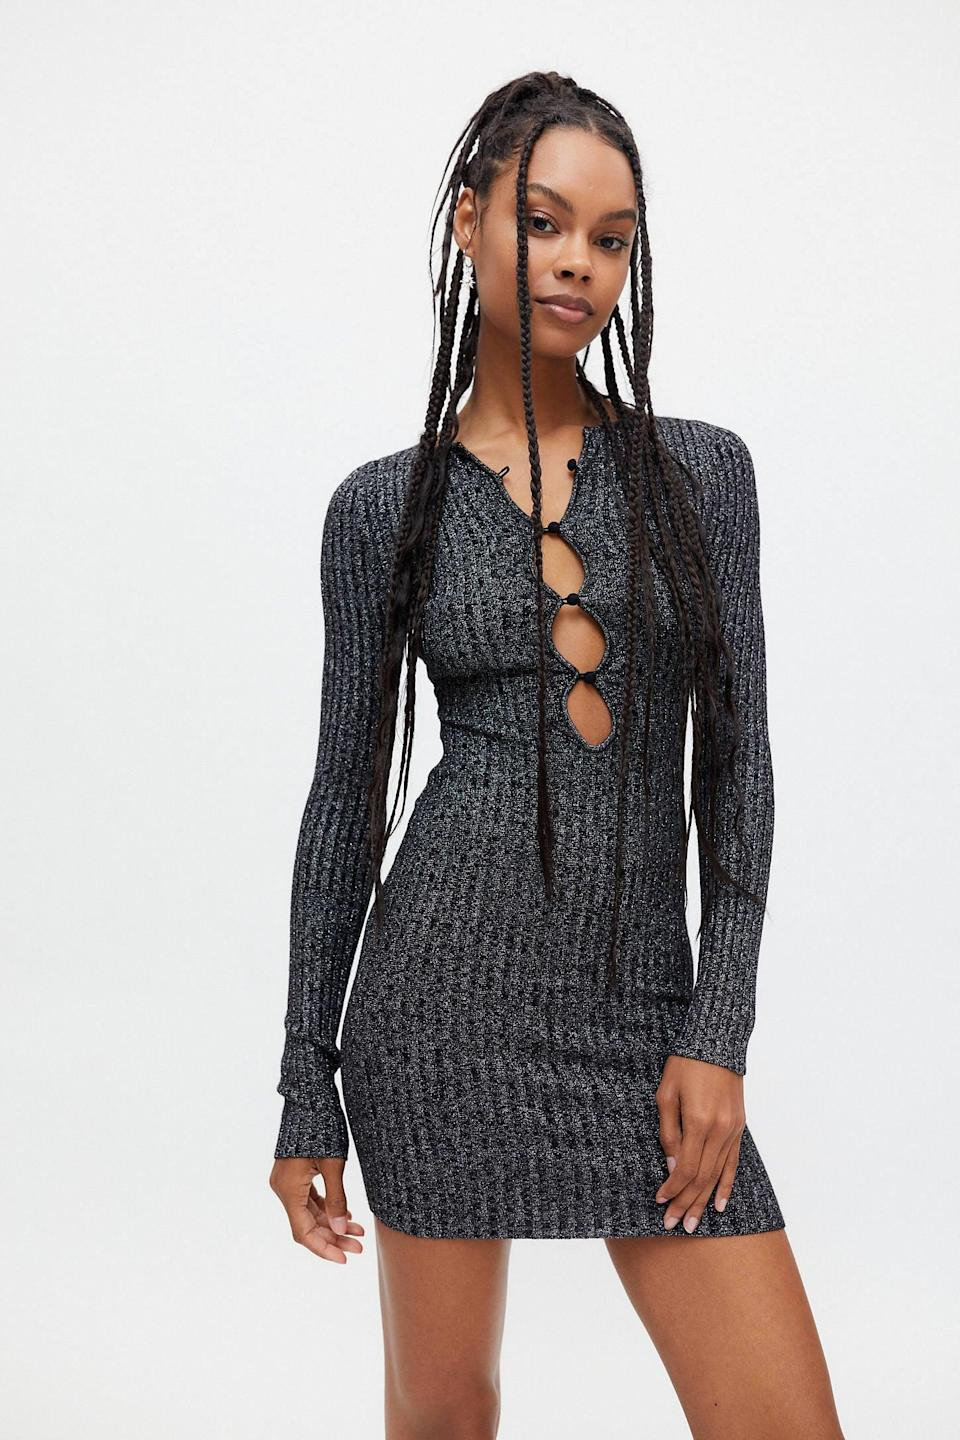 <p>The cutouts on this <span>UO Courtnley Metallic Sweater Dress</span> ($69) are super sexy. This is what we'd wear on a night out when we don't want to be uncomfortable.</p>